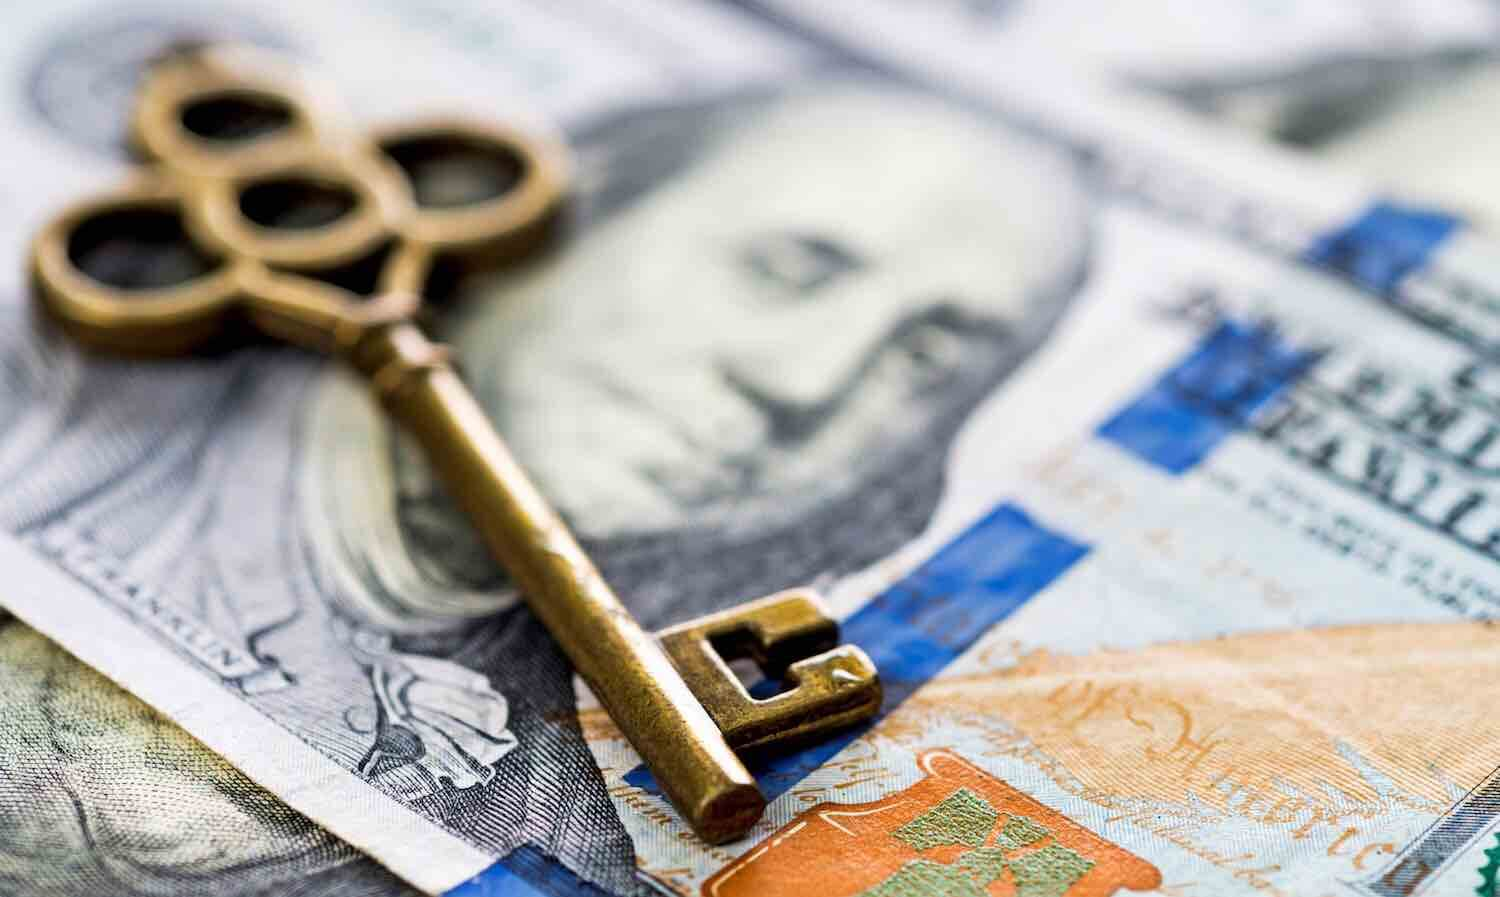 Key to Financial Investigations and Finding Missing Assets